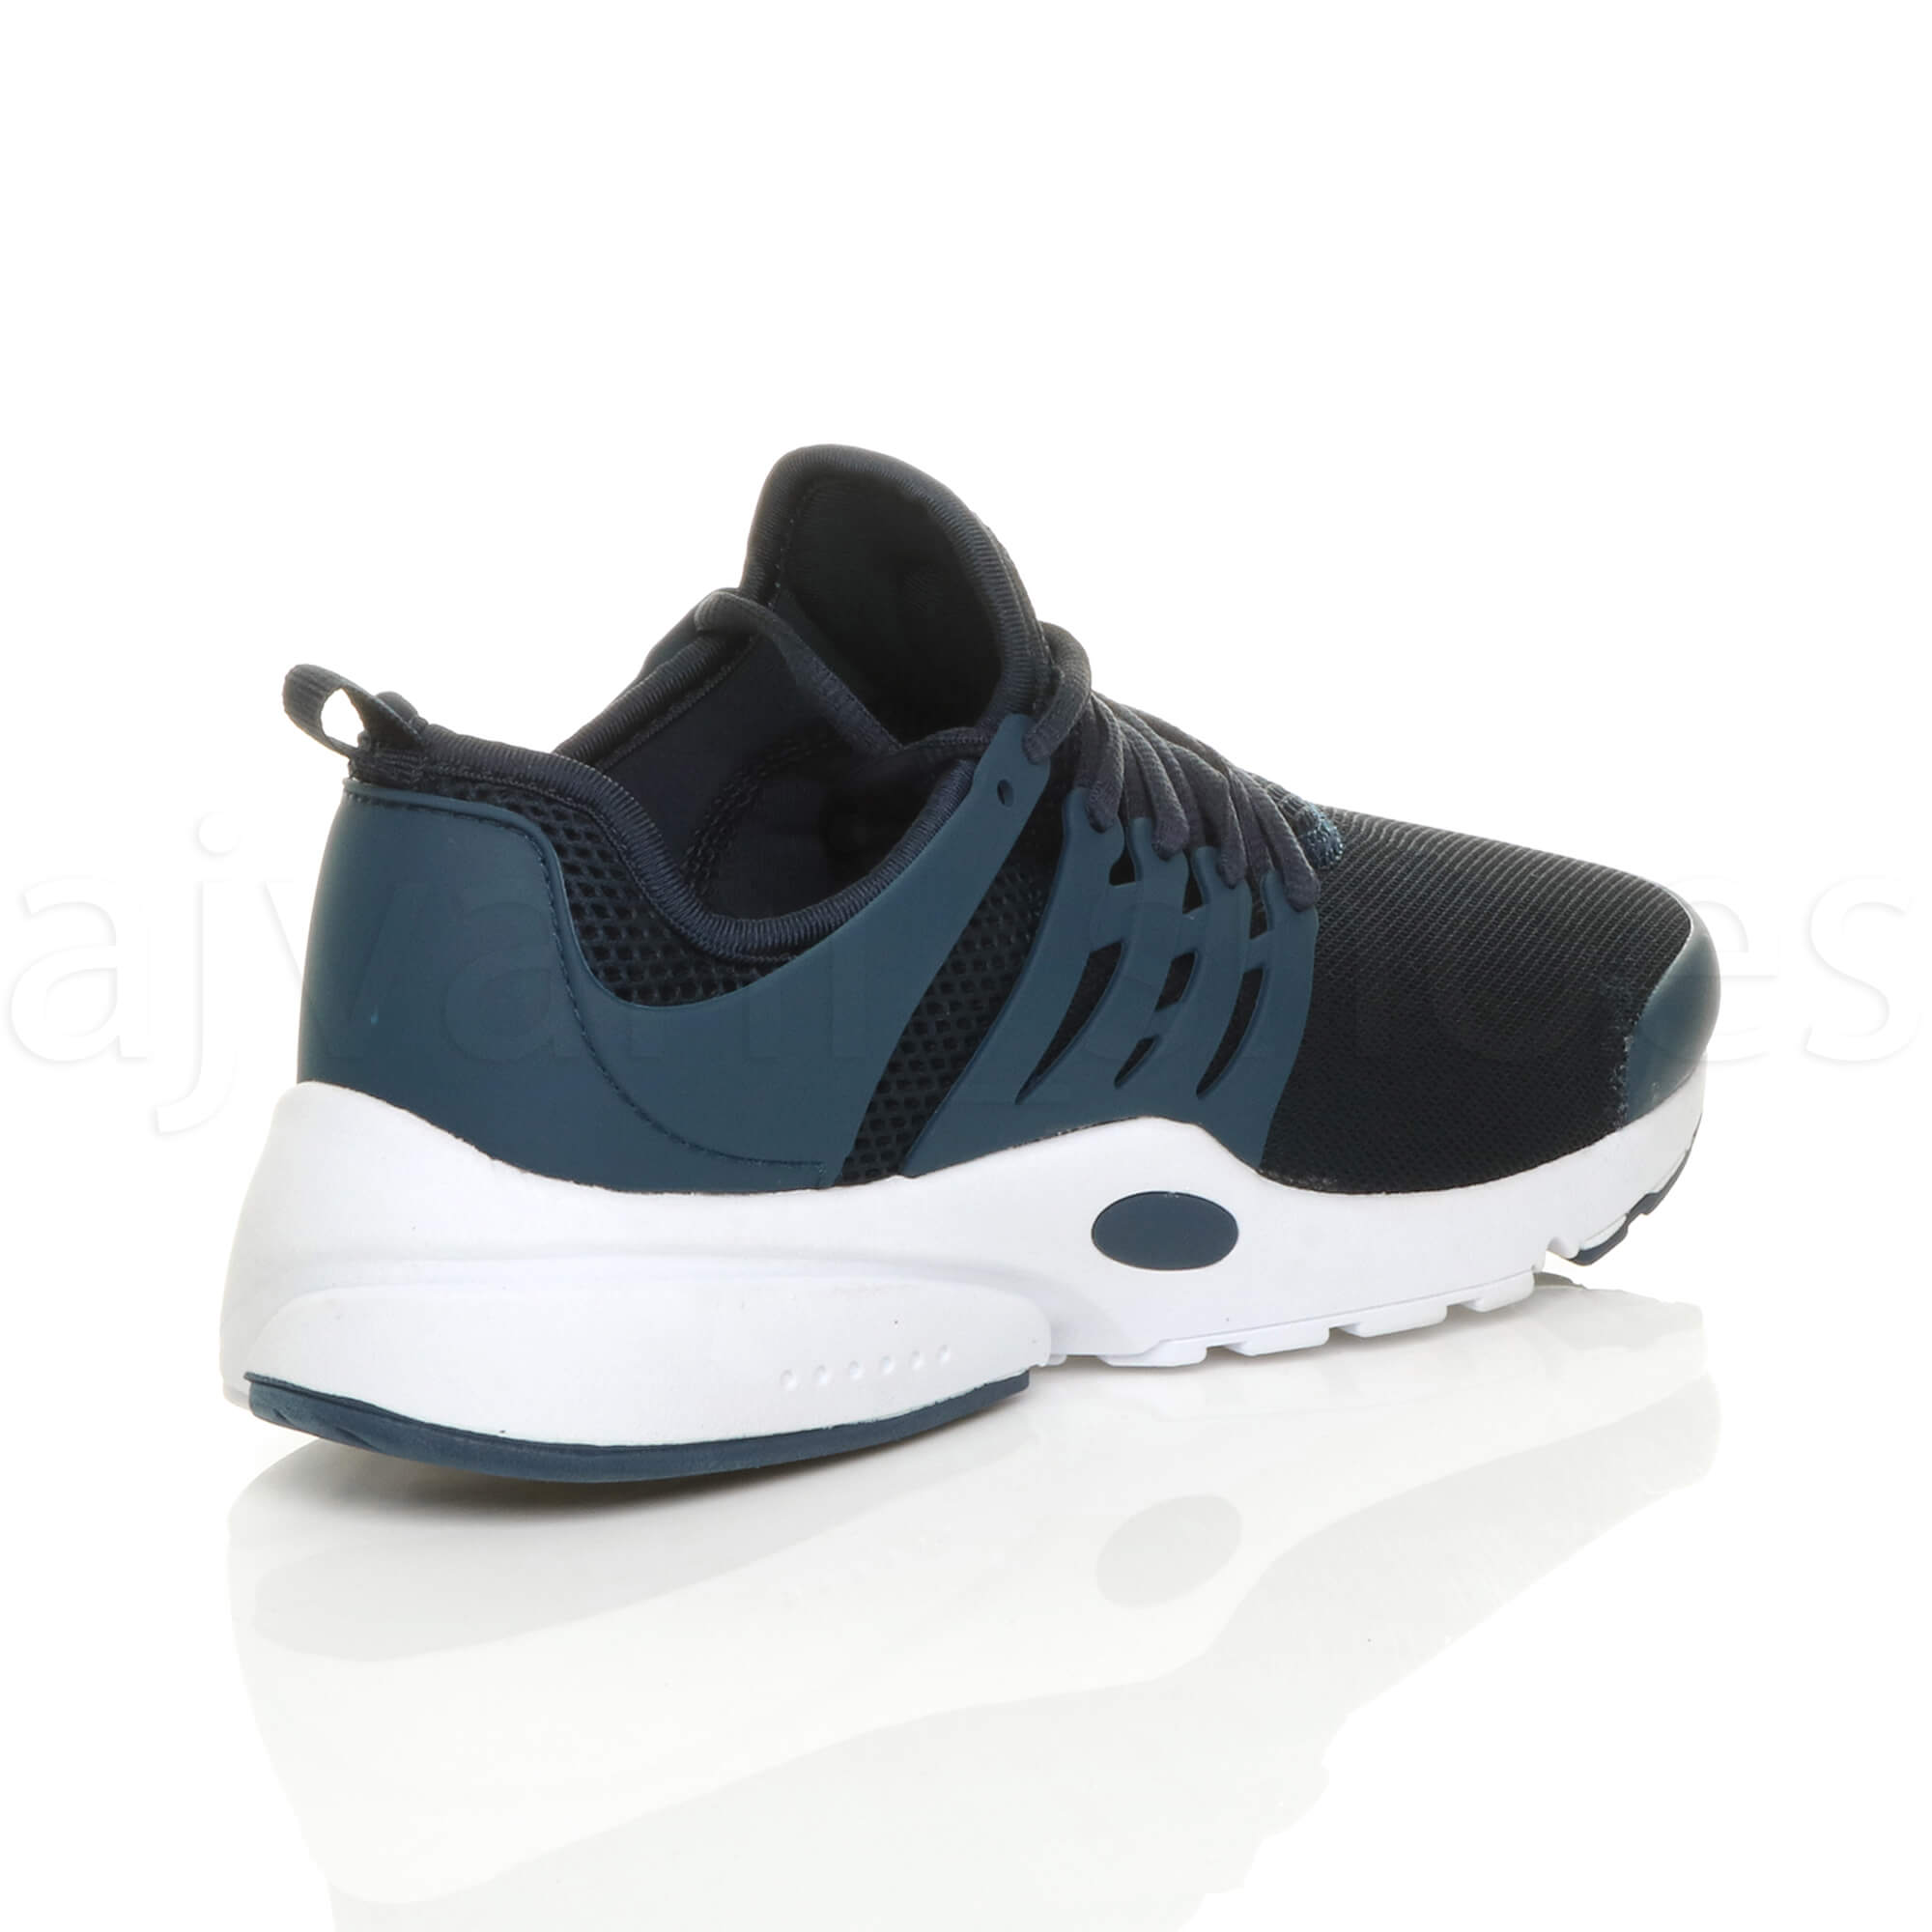 MENS-LACE-UP-SPORTS-GYM-FITNESS-RUNNING-FLEXIBLE-TRAINERS-CASUAL-SNEAKERS-SIZE thumbnail 37